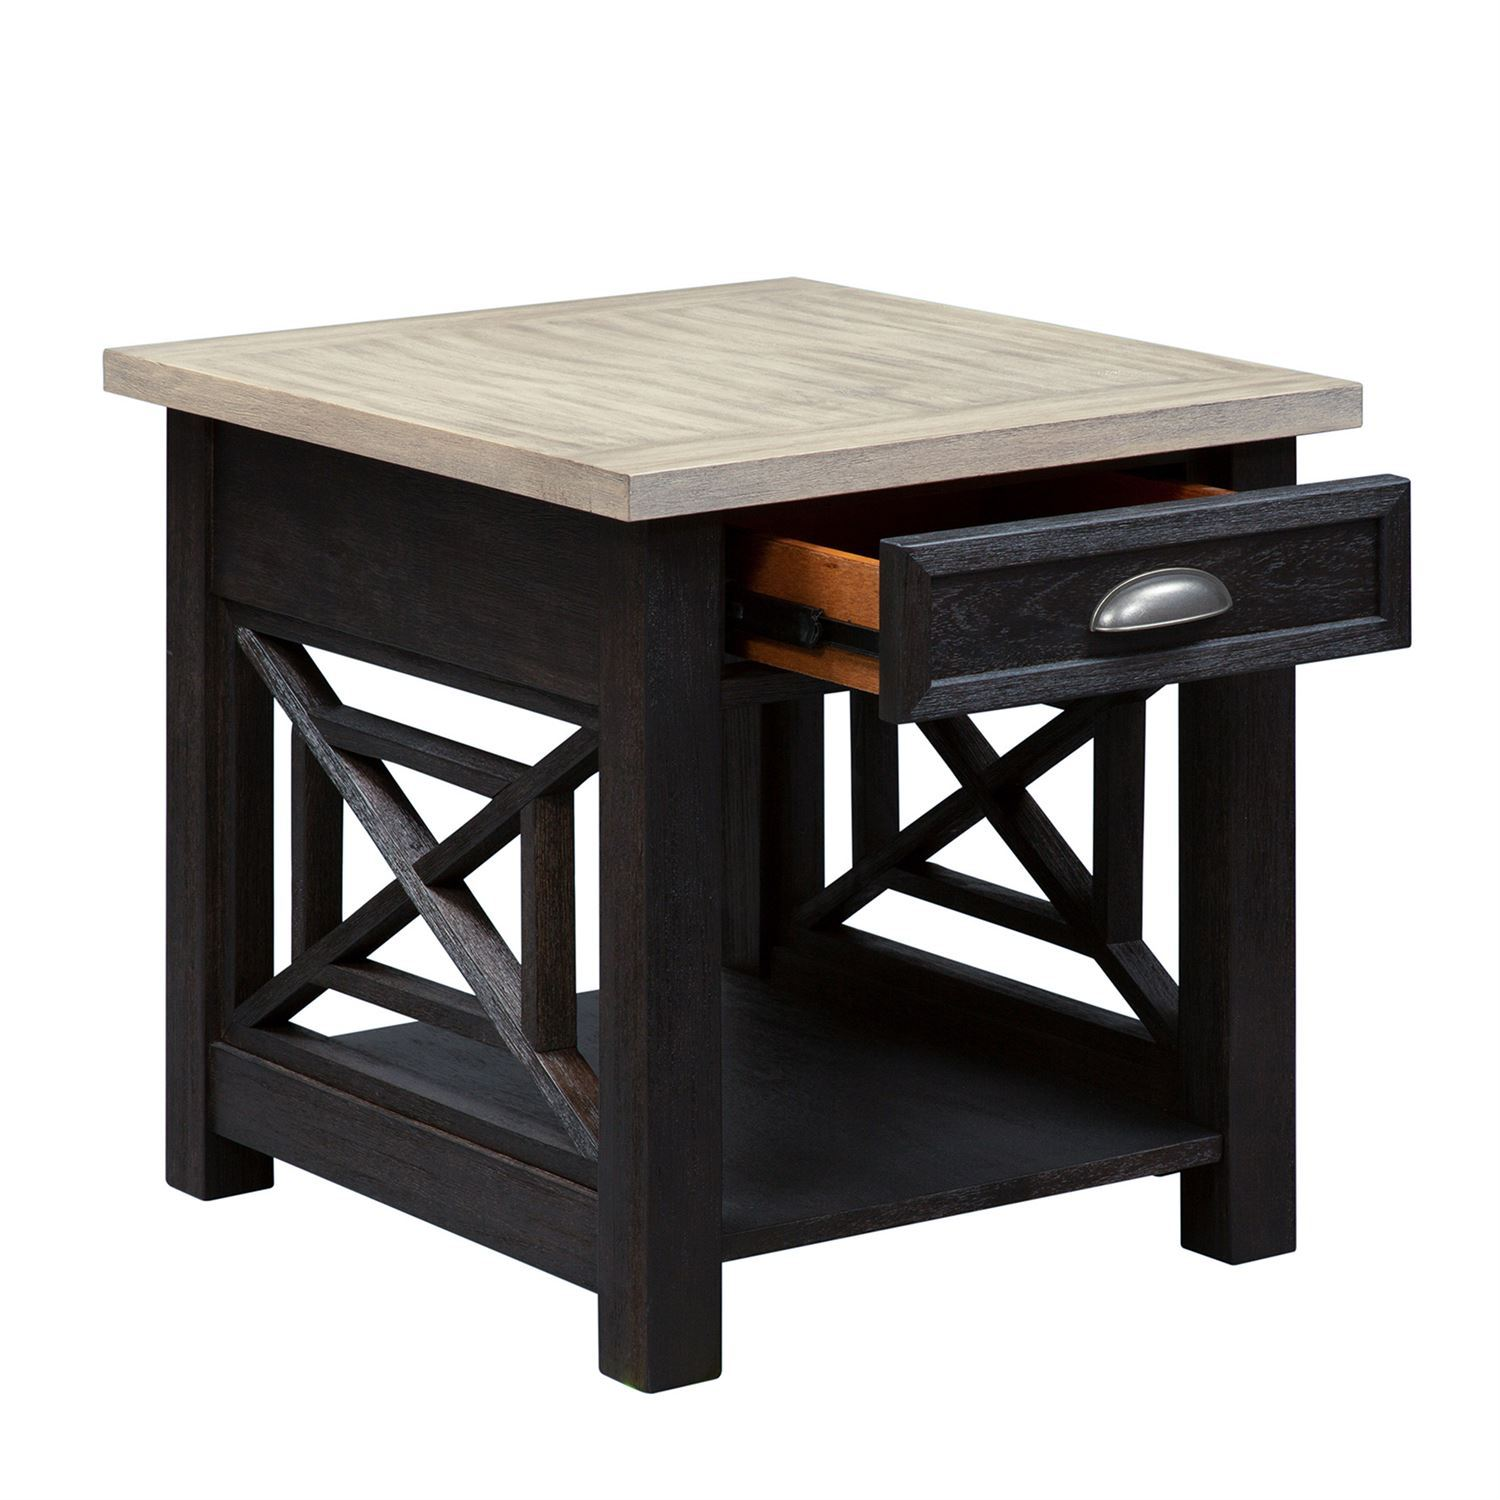 living room tables tagged end furniture fair baroque accent table heatherbrook storage simple lamp full marble coffee small round antique with drawer danish black wood side metal